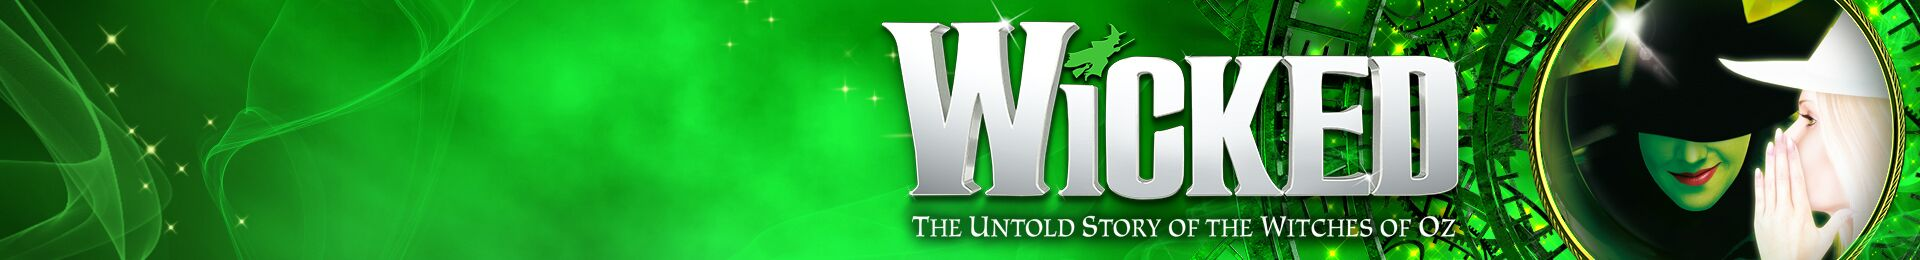 Wicked & Dinner at Jamie's Italian - Victoria banner image